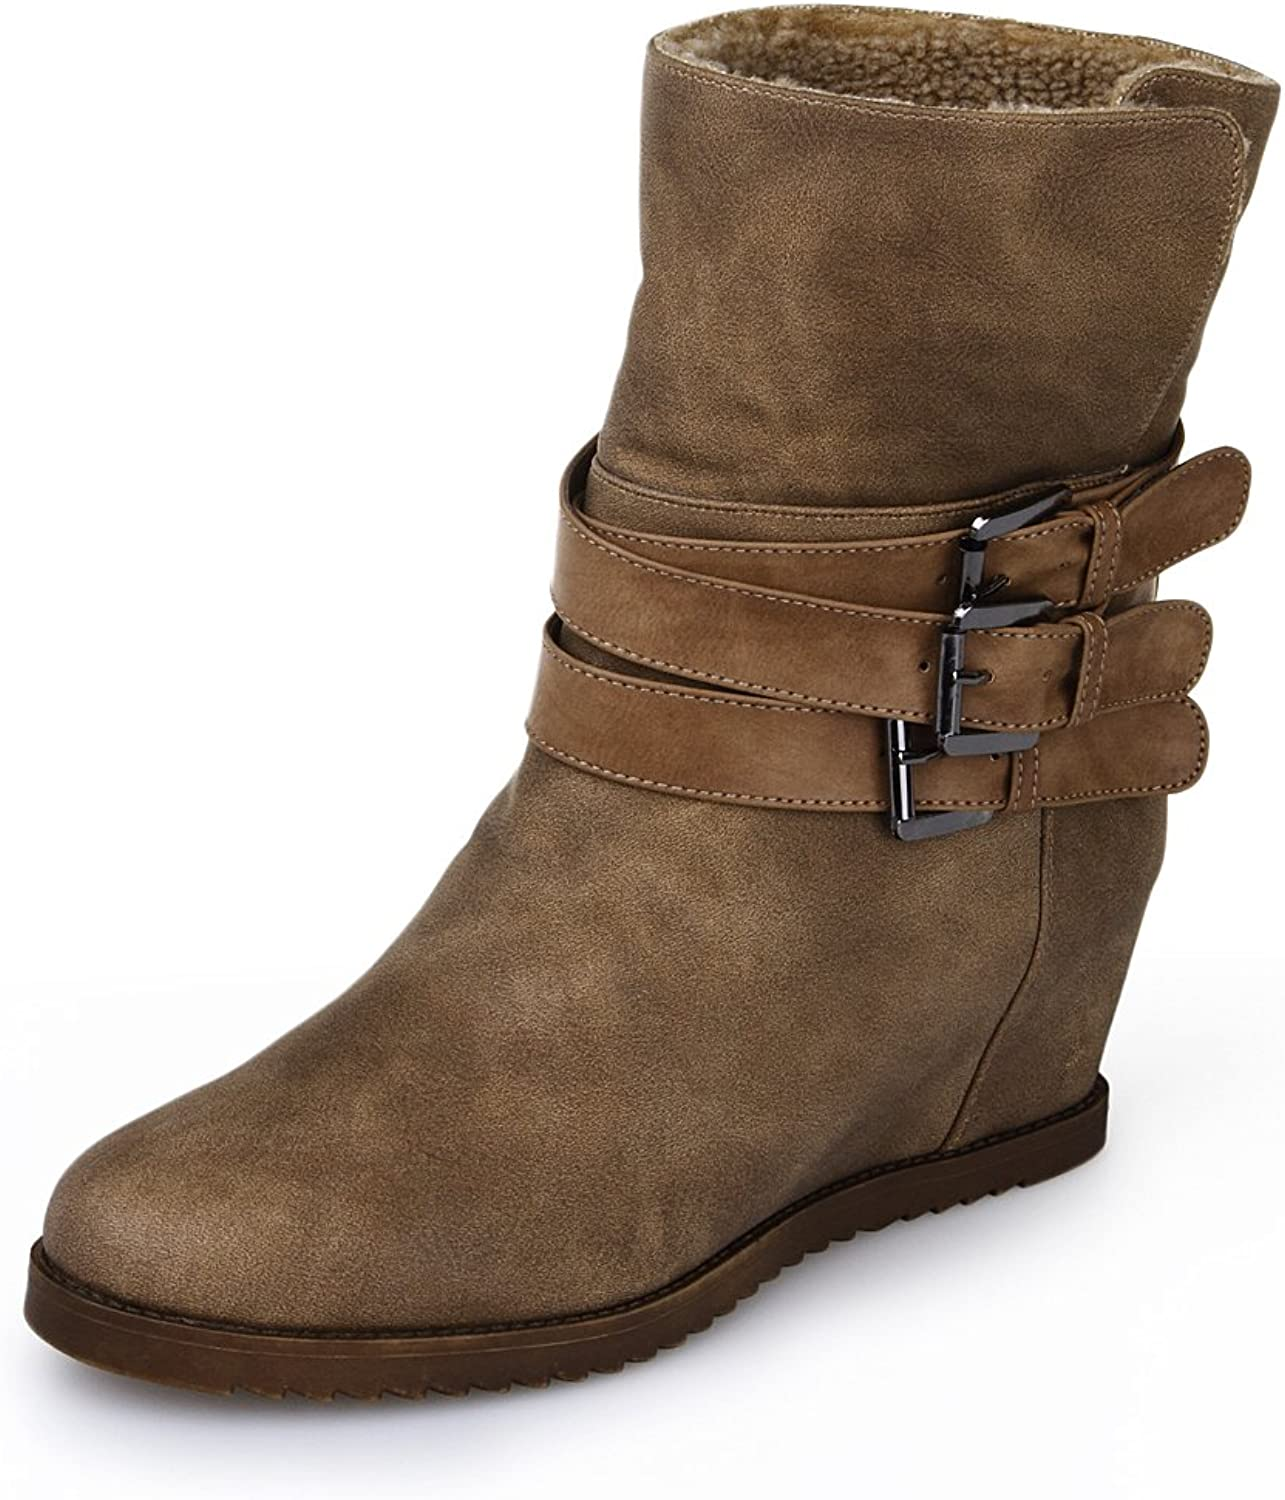 Alexis Leroy Women and Girls' Fashion Warm Inside Wedges Triple Buckles Ankle Winter Boots Khaki 40 EU   9-9.5 US